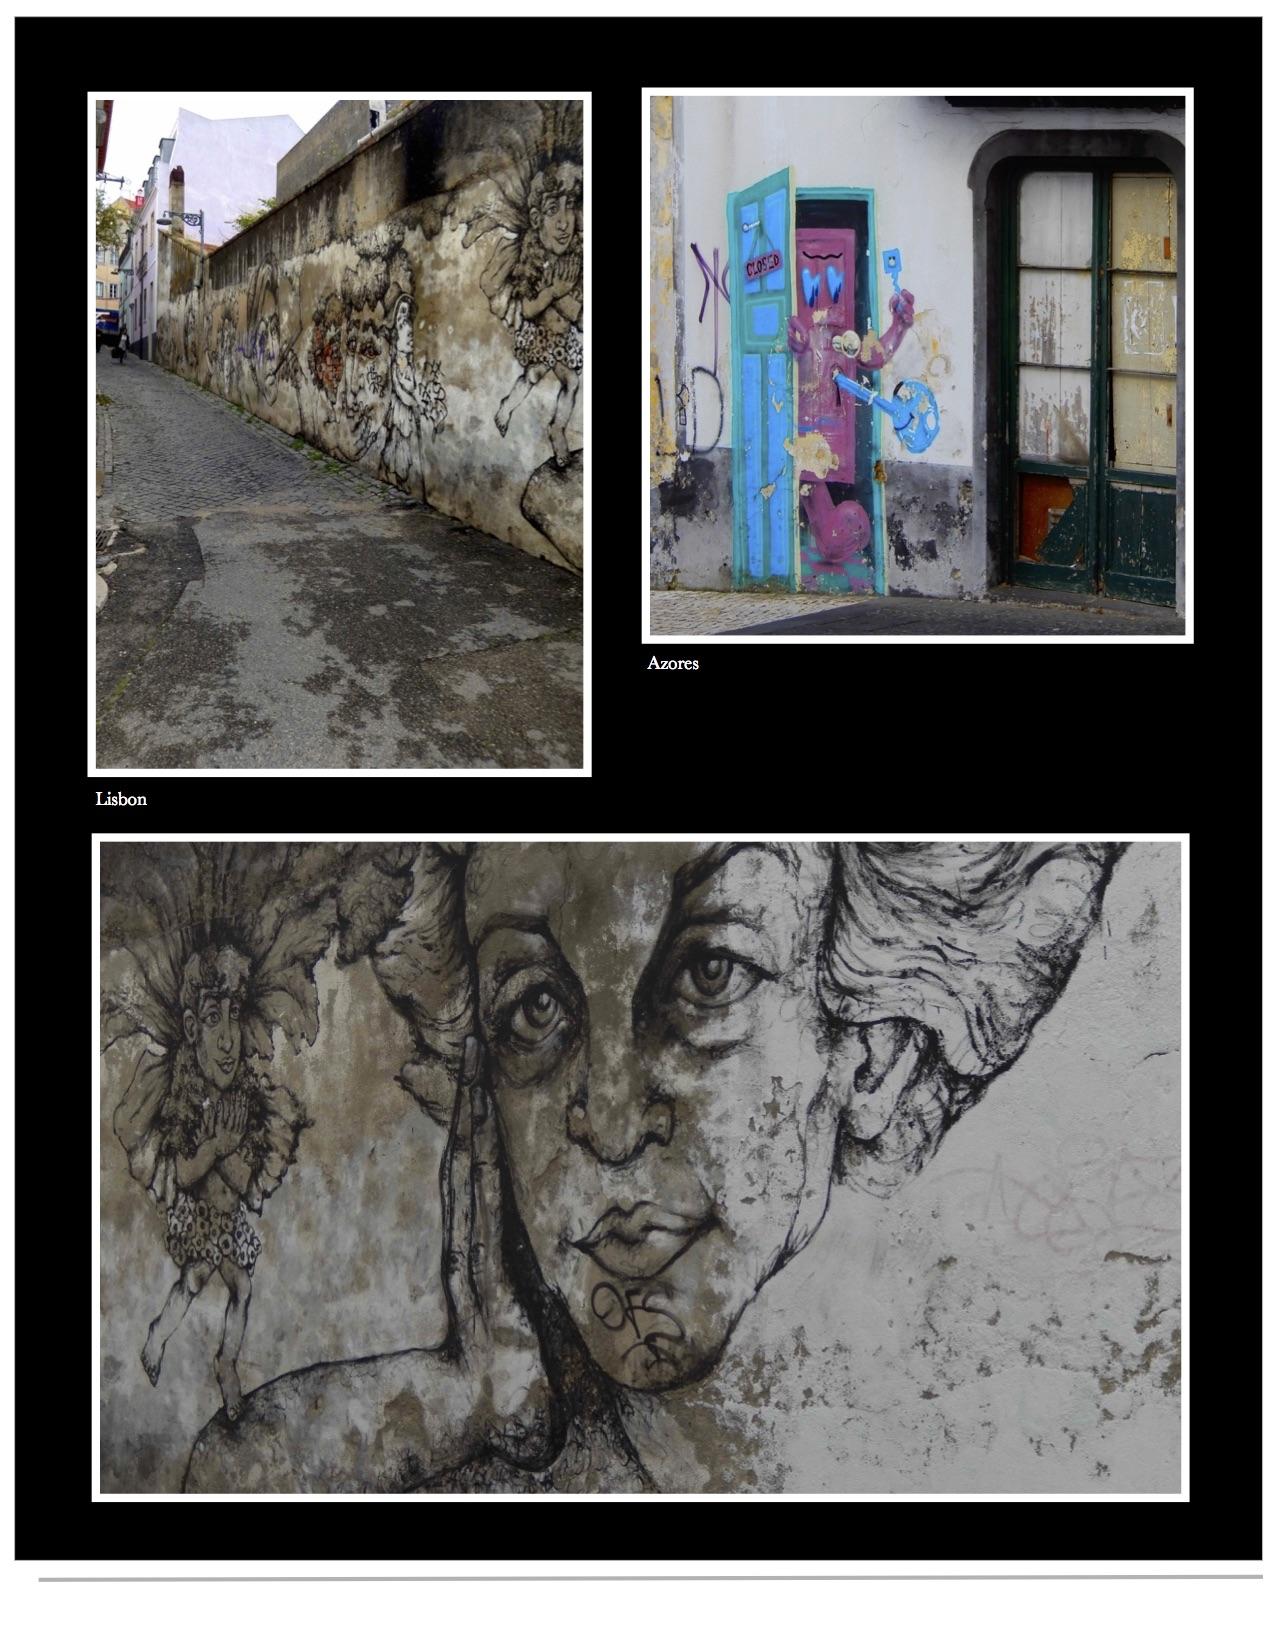 Street art in Lisbon and the Azores.